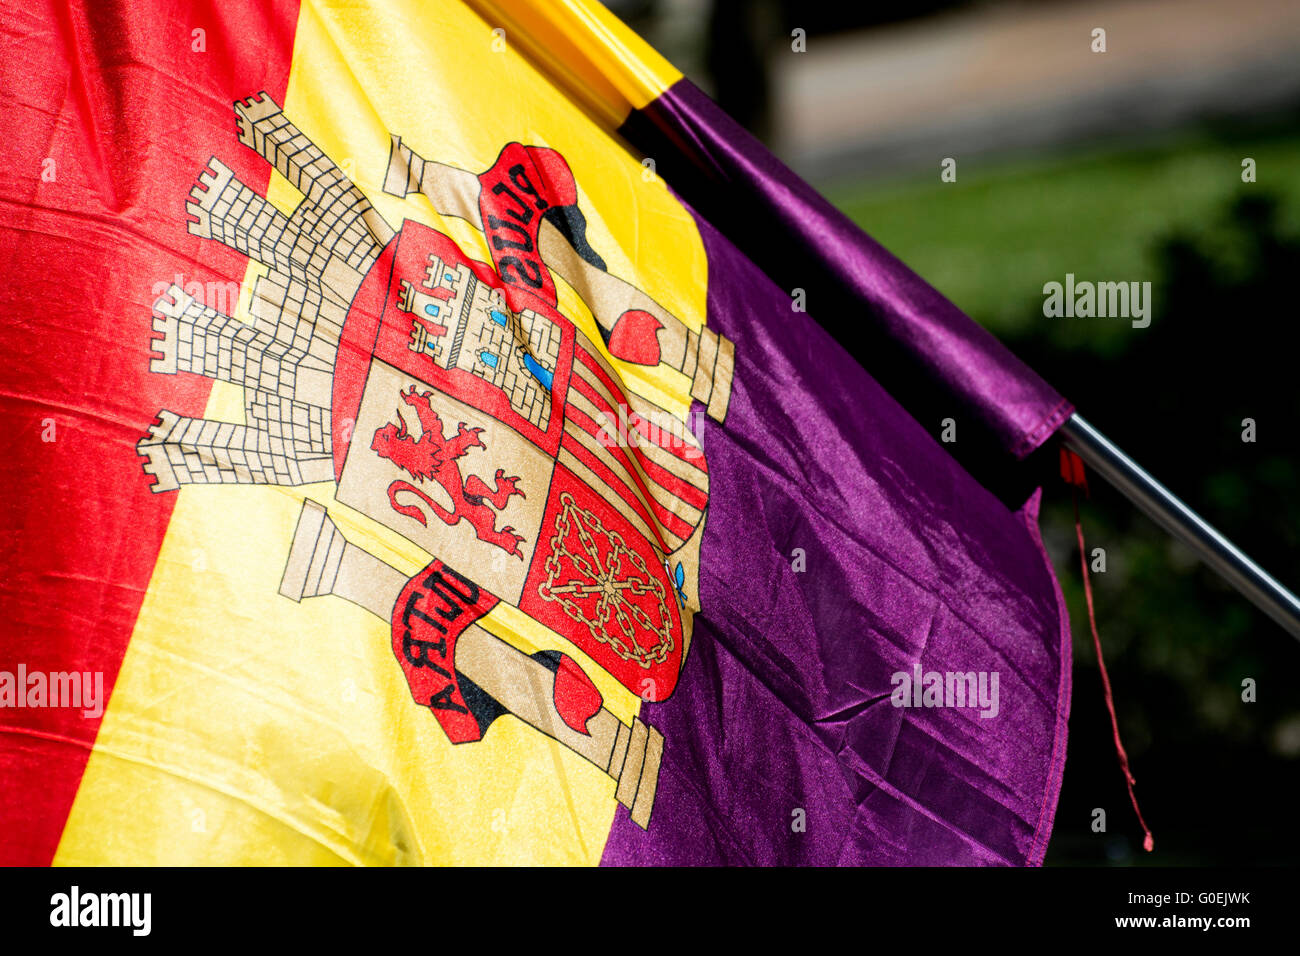 Oviedo, Spain. 1st May, 2016. Spanish Republican flag during the May Day Rally in commemoration of International - Stock Image